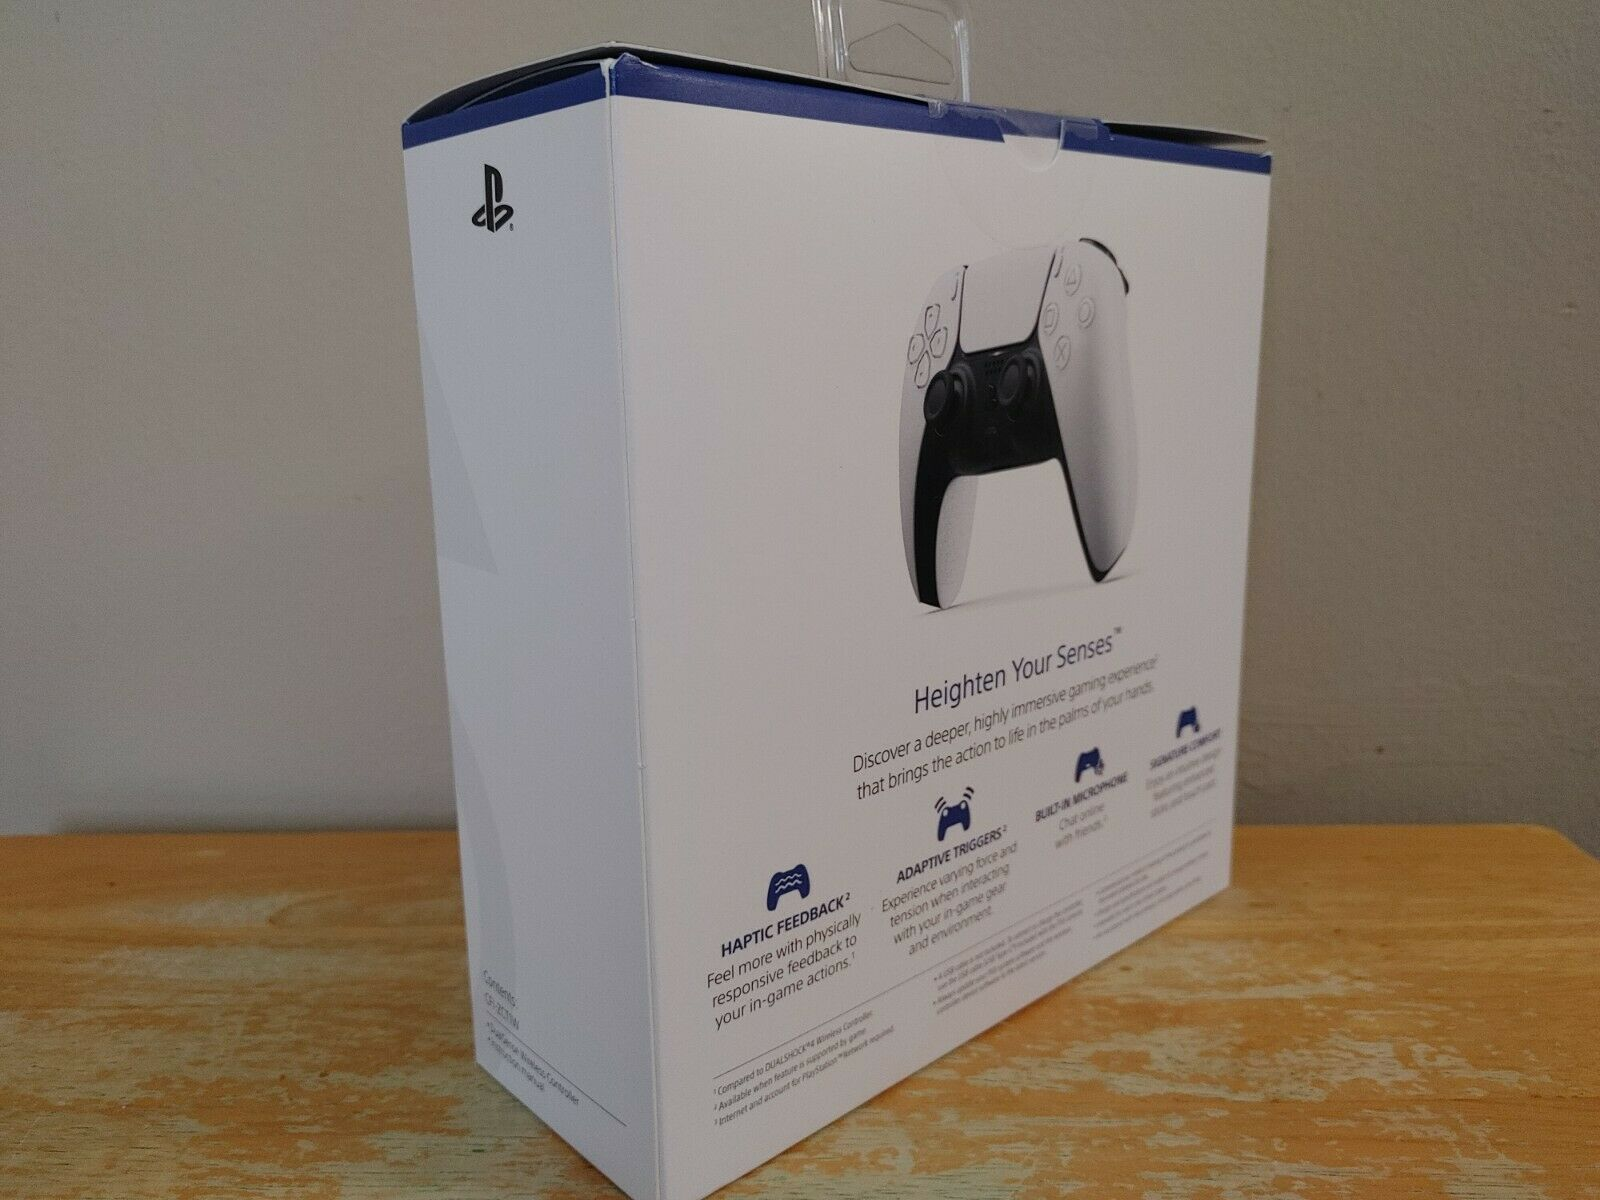 Sony PlayStation 5 DualSense Wireless Controller - Brand New Factory Sealed - $45.00